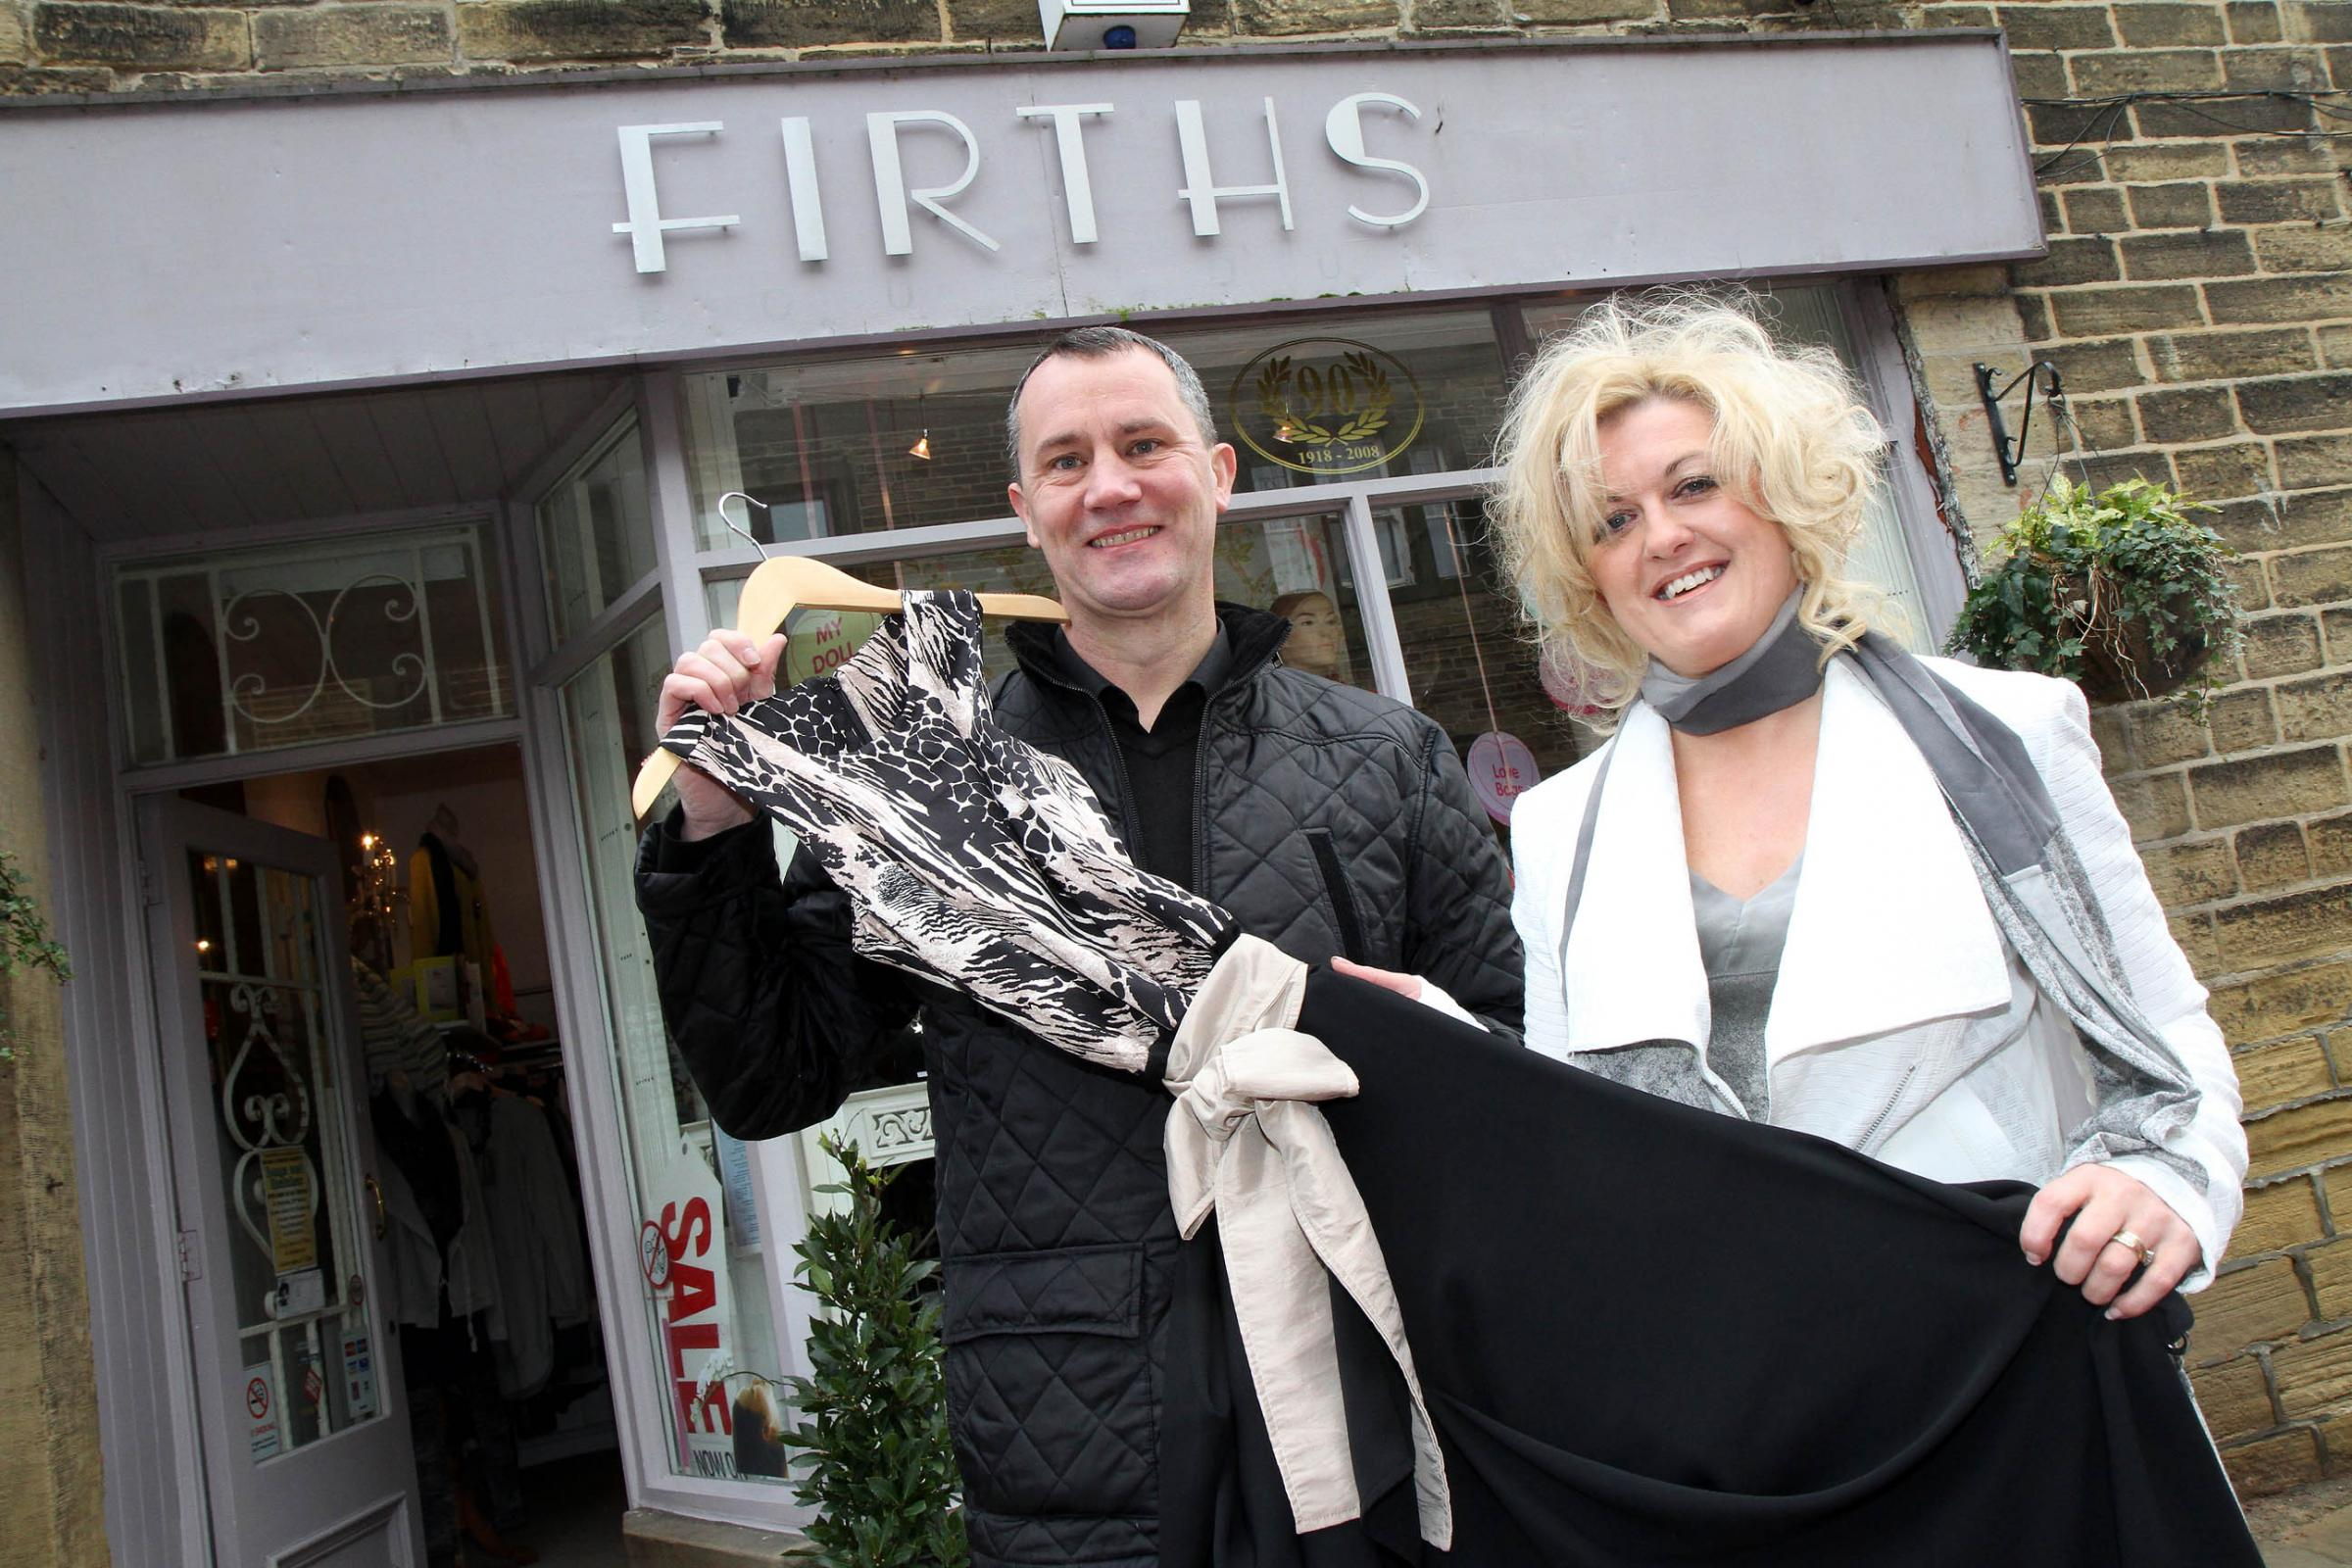 Councillor Glen Miller sizes up a dress for the fashion show, with the help of event organiser Nikki Carroll, owner of Firth's in Haworth